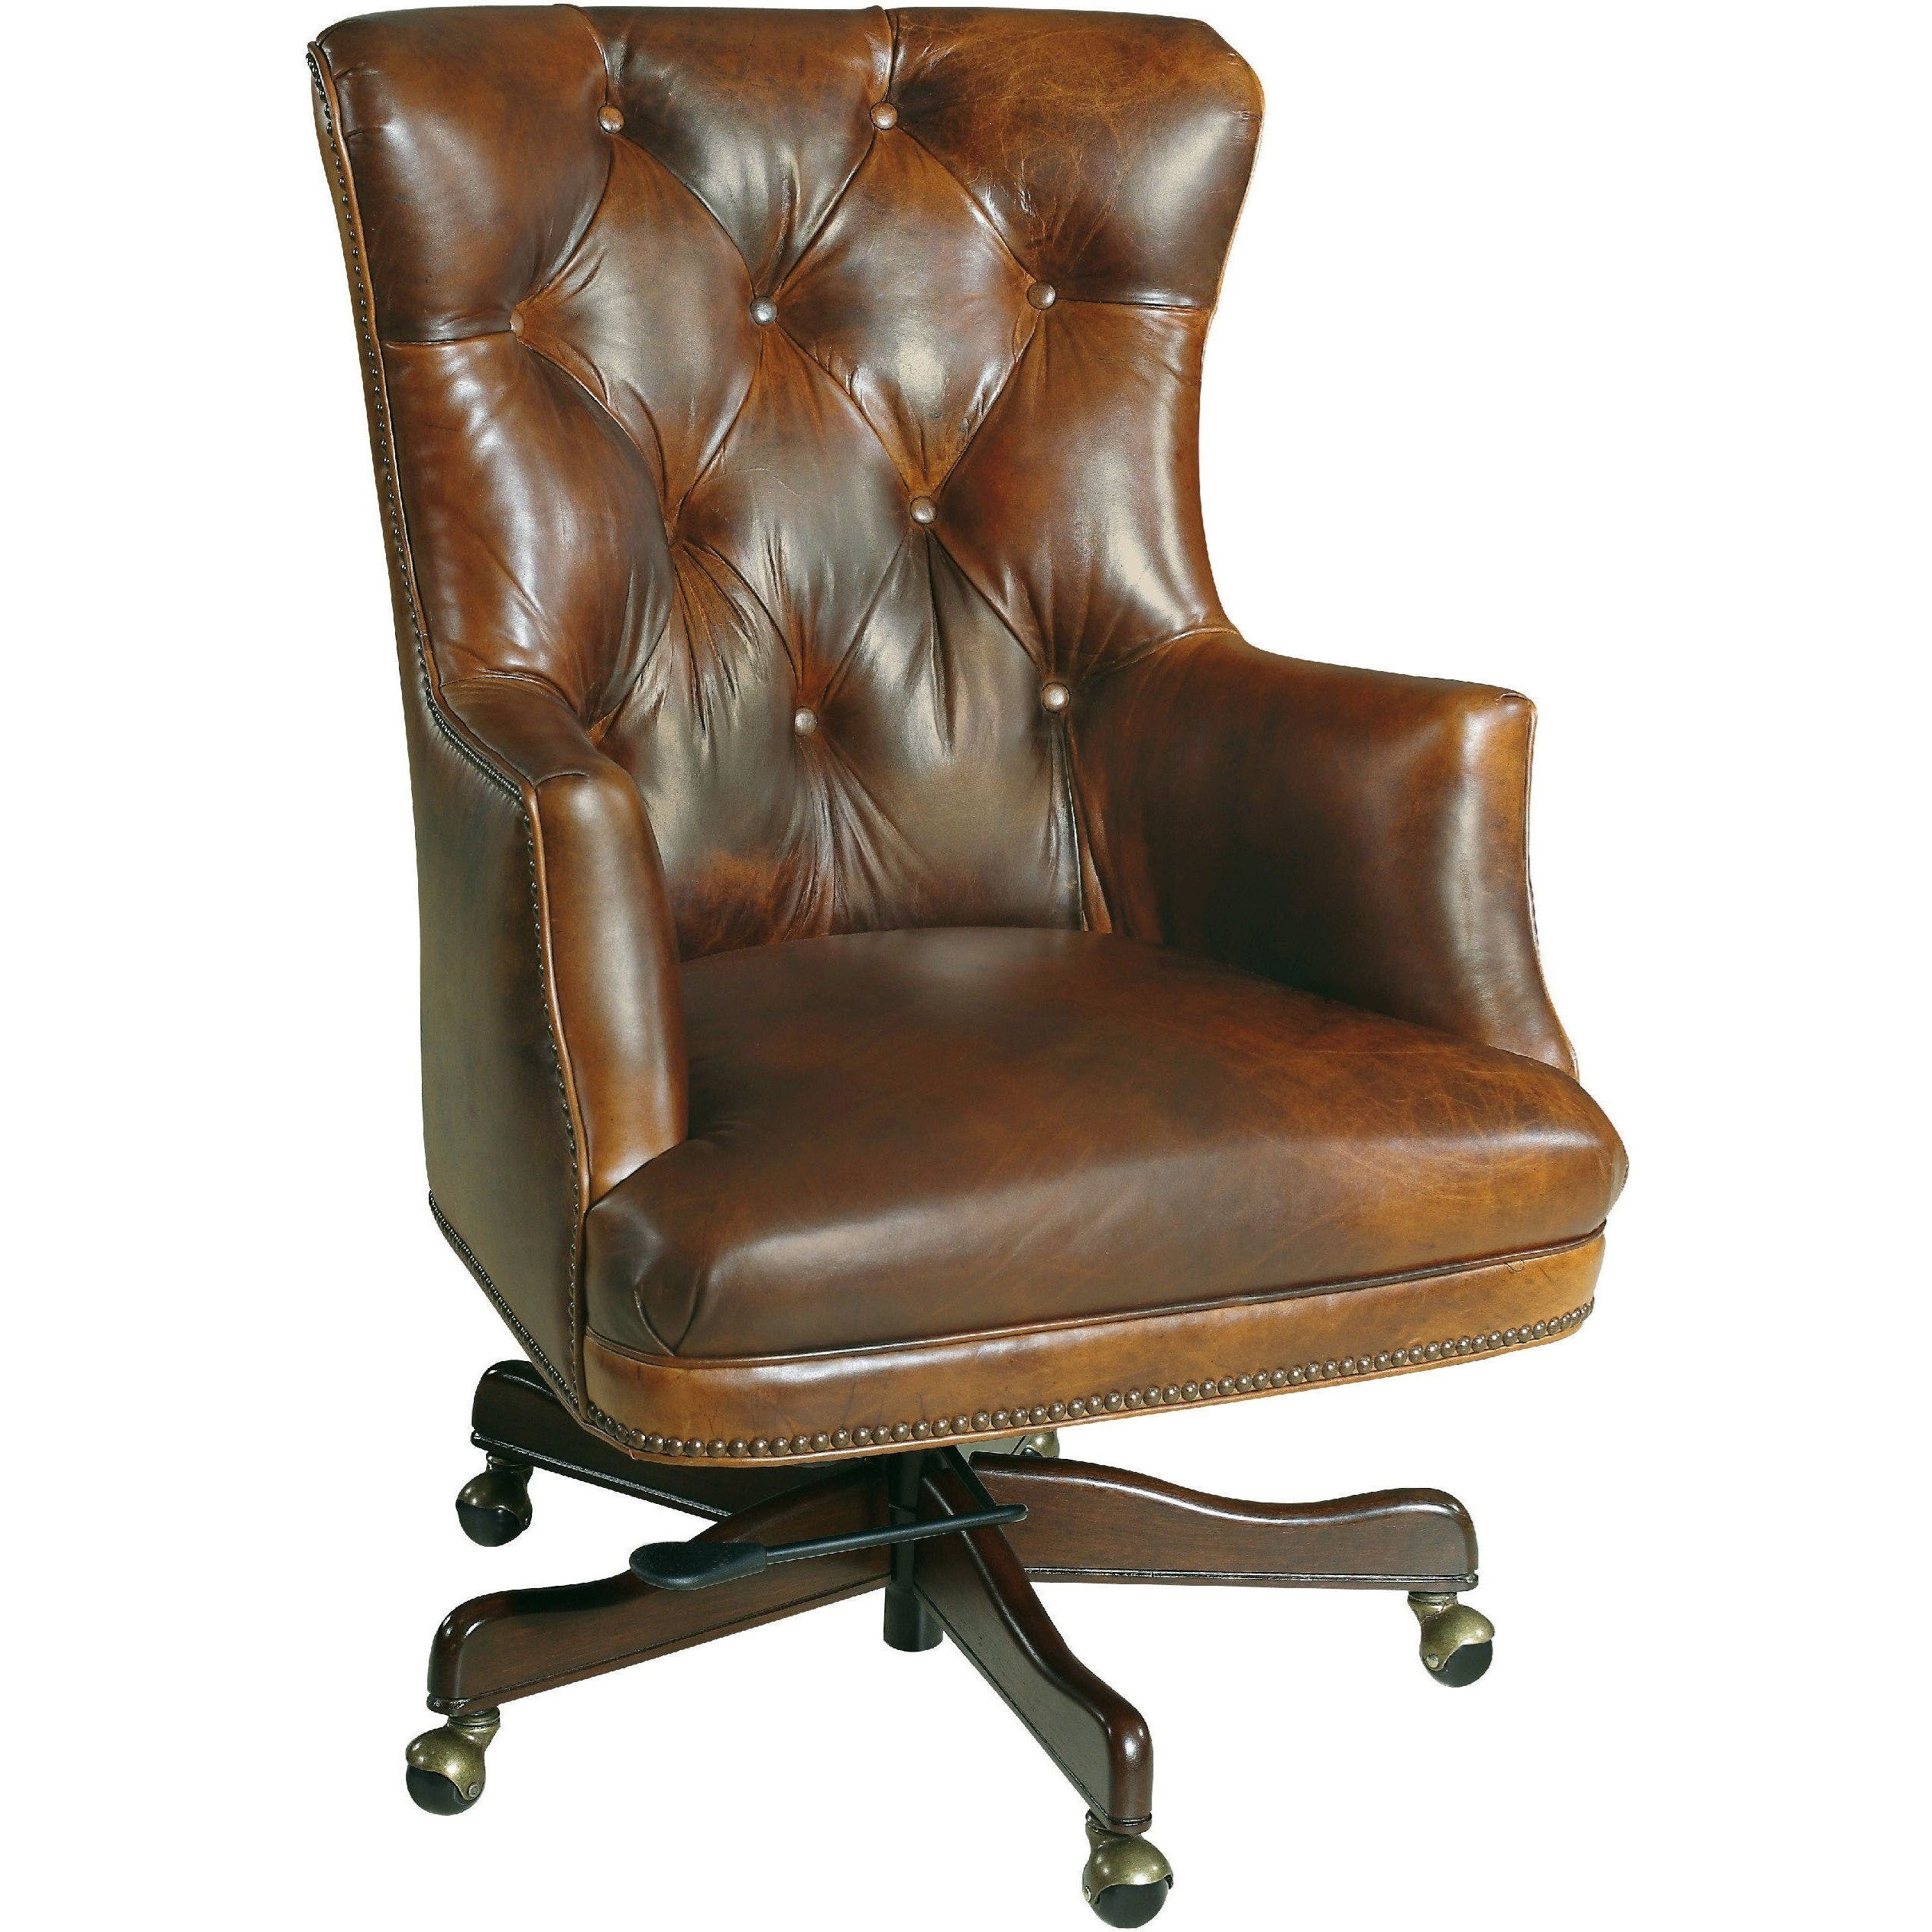 Executive Seating Executive Swivel Tilt Chair by Hooker Furniture at Stoney Creek Furniture